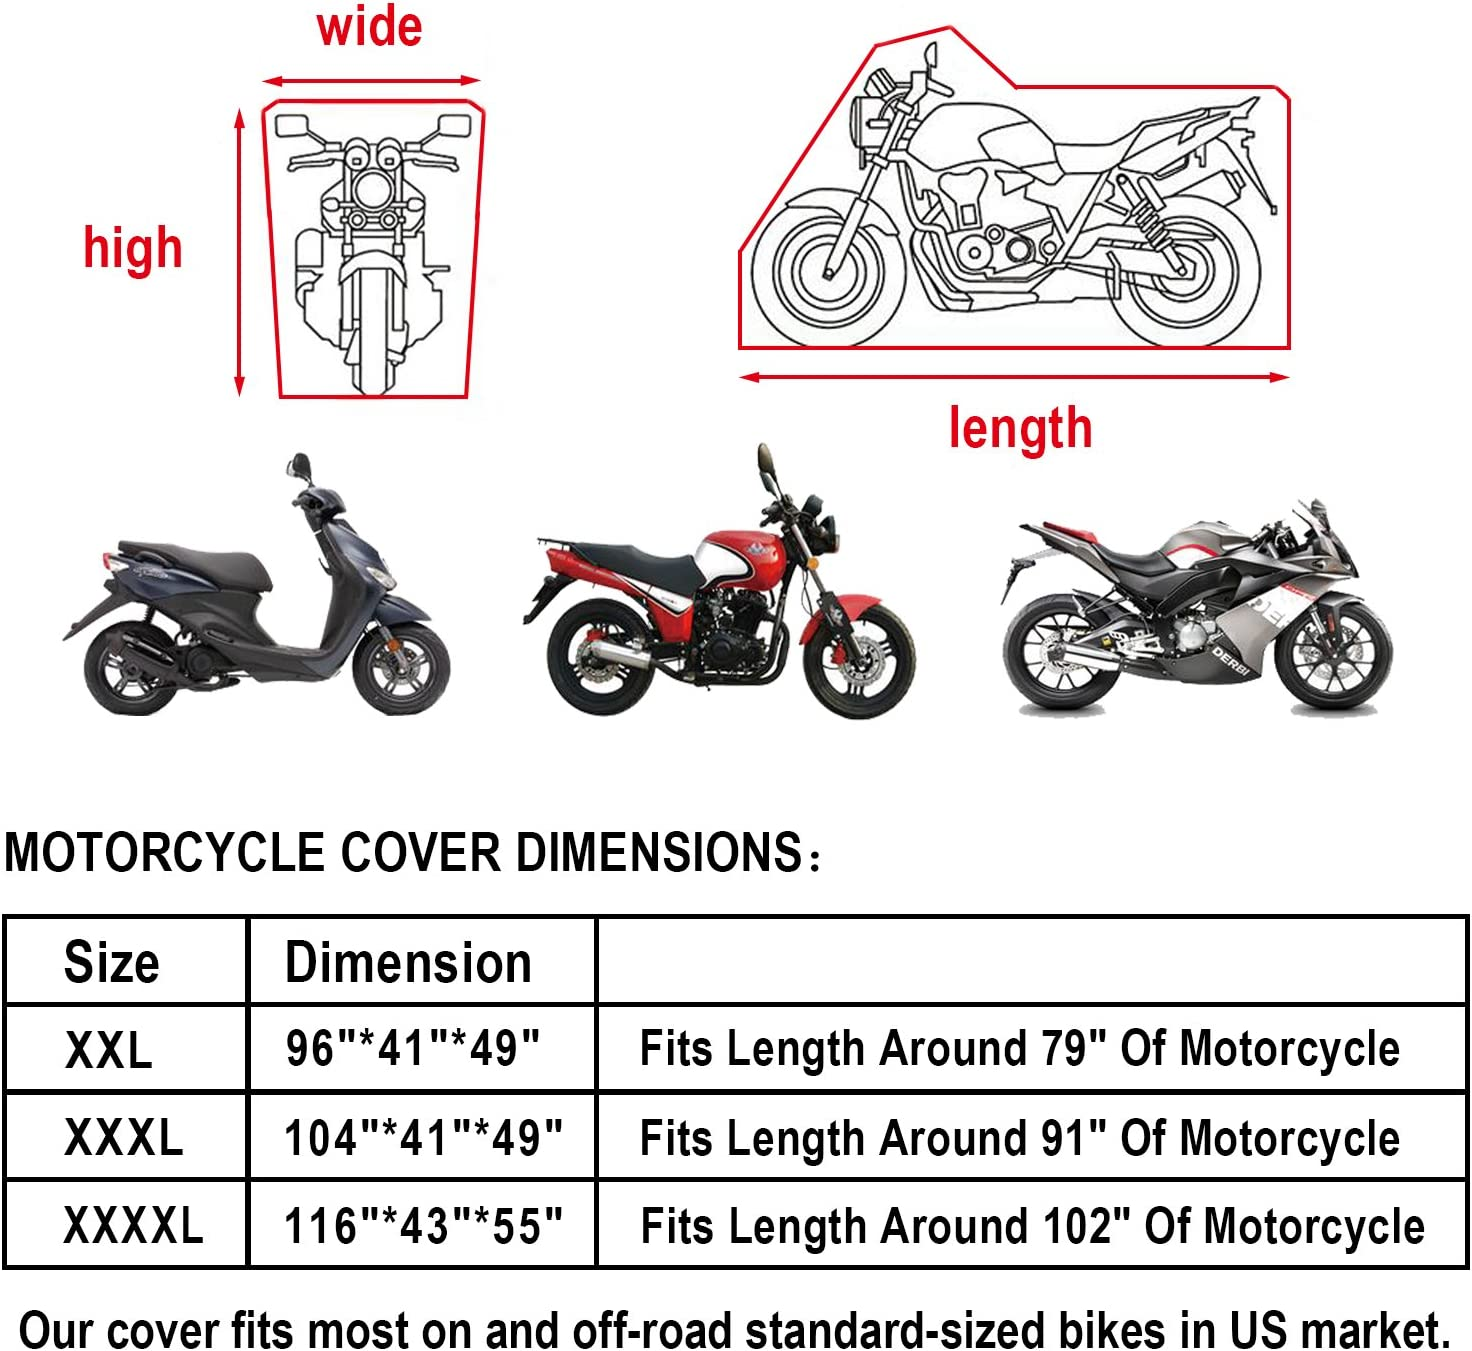 Precision Fit for Tour Bikes XXXL-104x41x49, Black Eleloveph Protect Against Dust,Rain,Snow and Sun All Season Waterproof Outdoor Protection Motorcycle Cover Choppers and Cruisers XXXL-104x41x49 4333030675 Snow and Sun